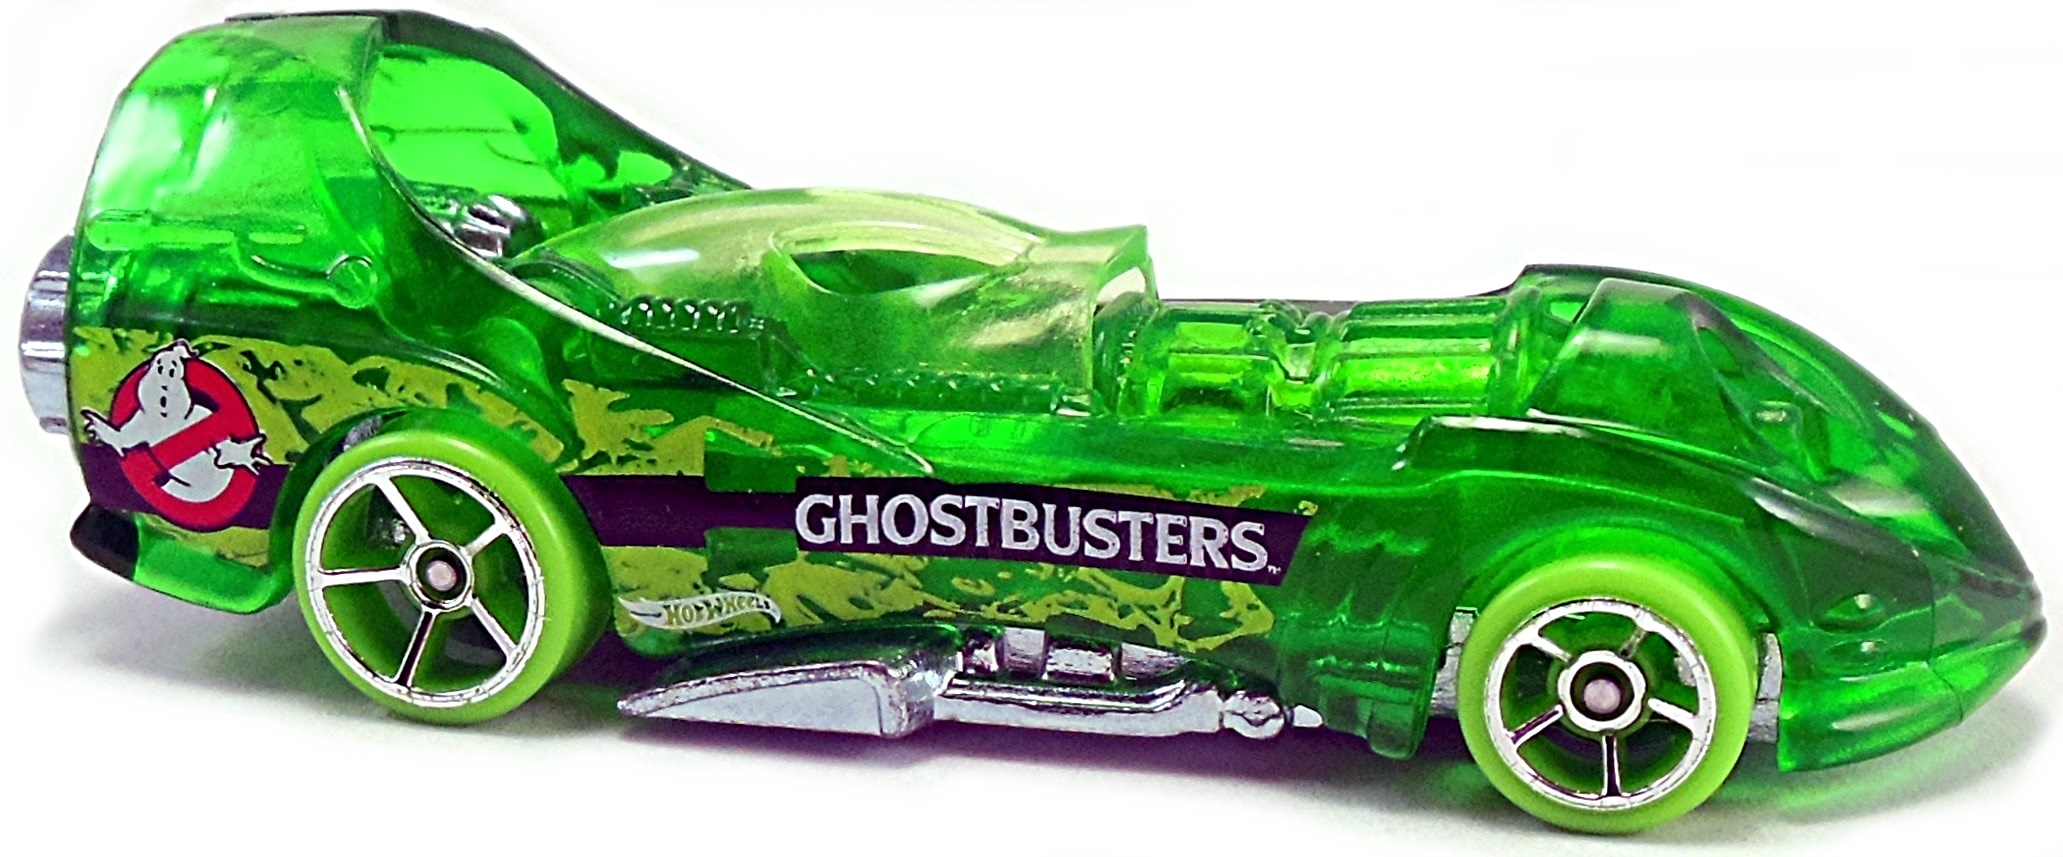 Dog Car Protector >> 2016 Ghostbusters Series | Hot Wheels Newsletter